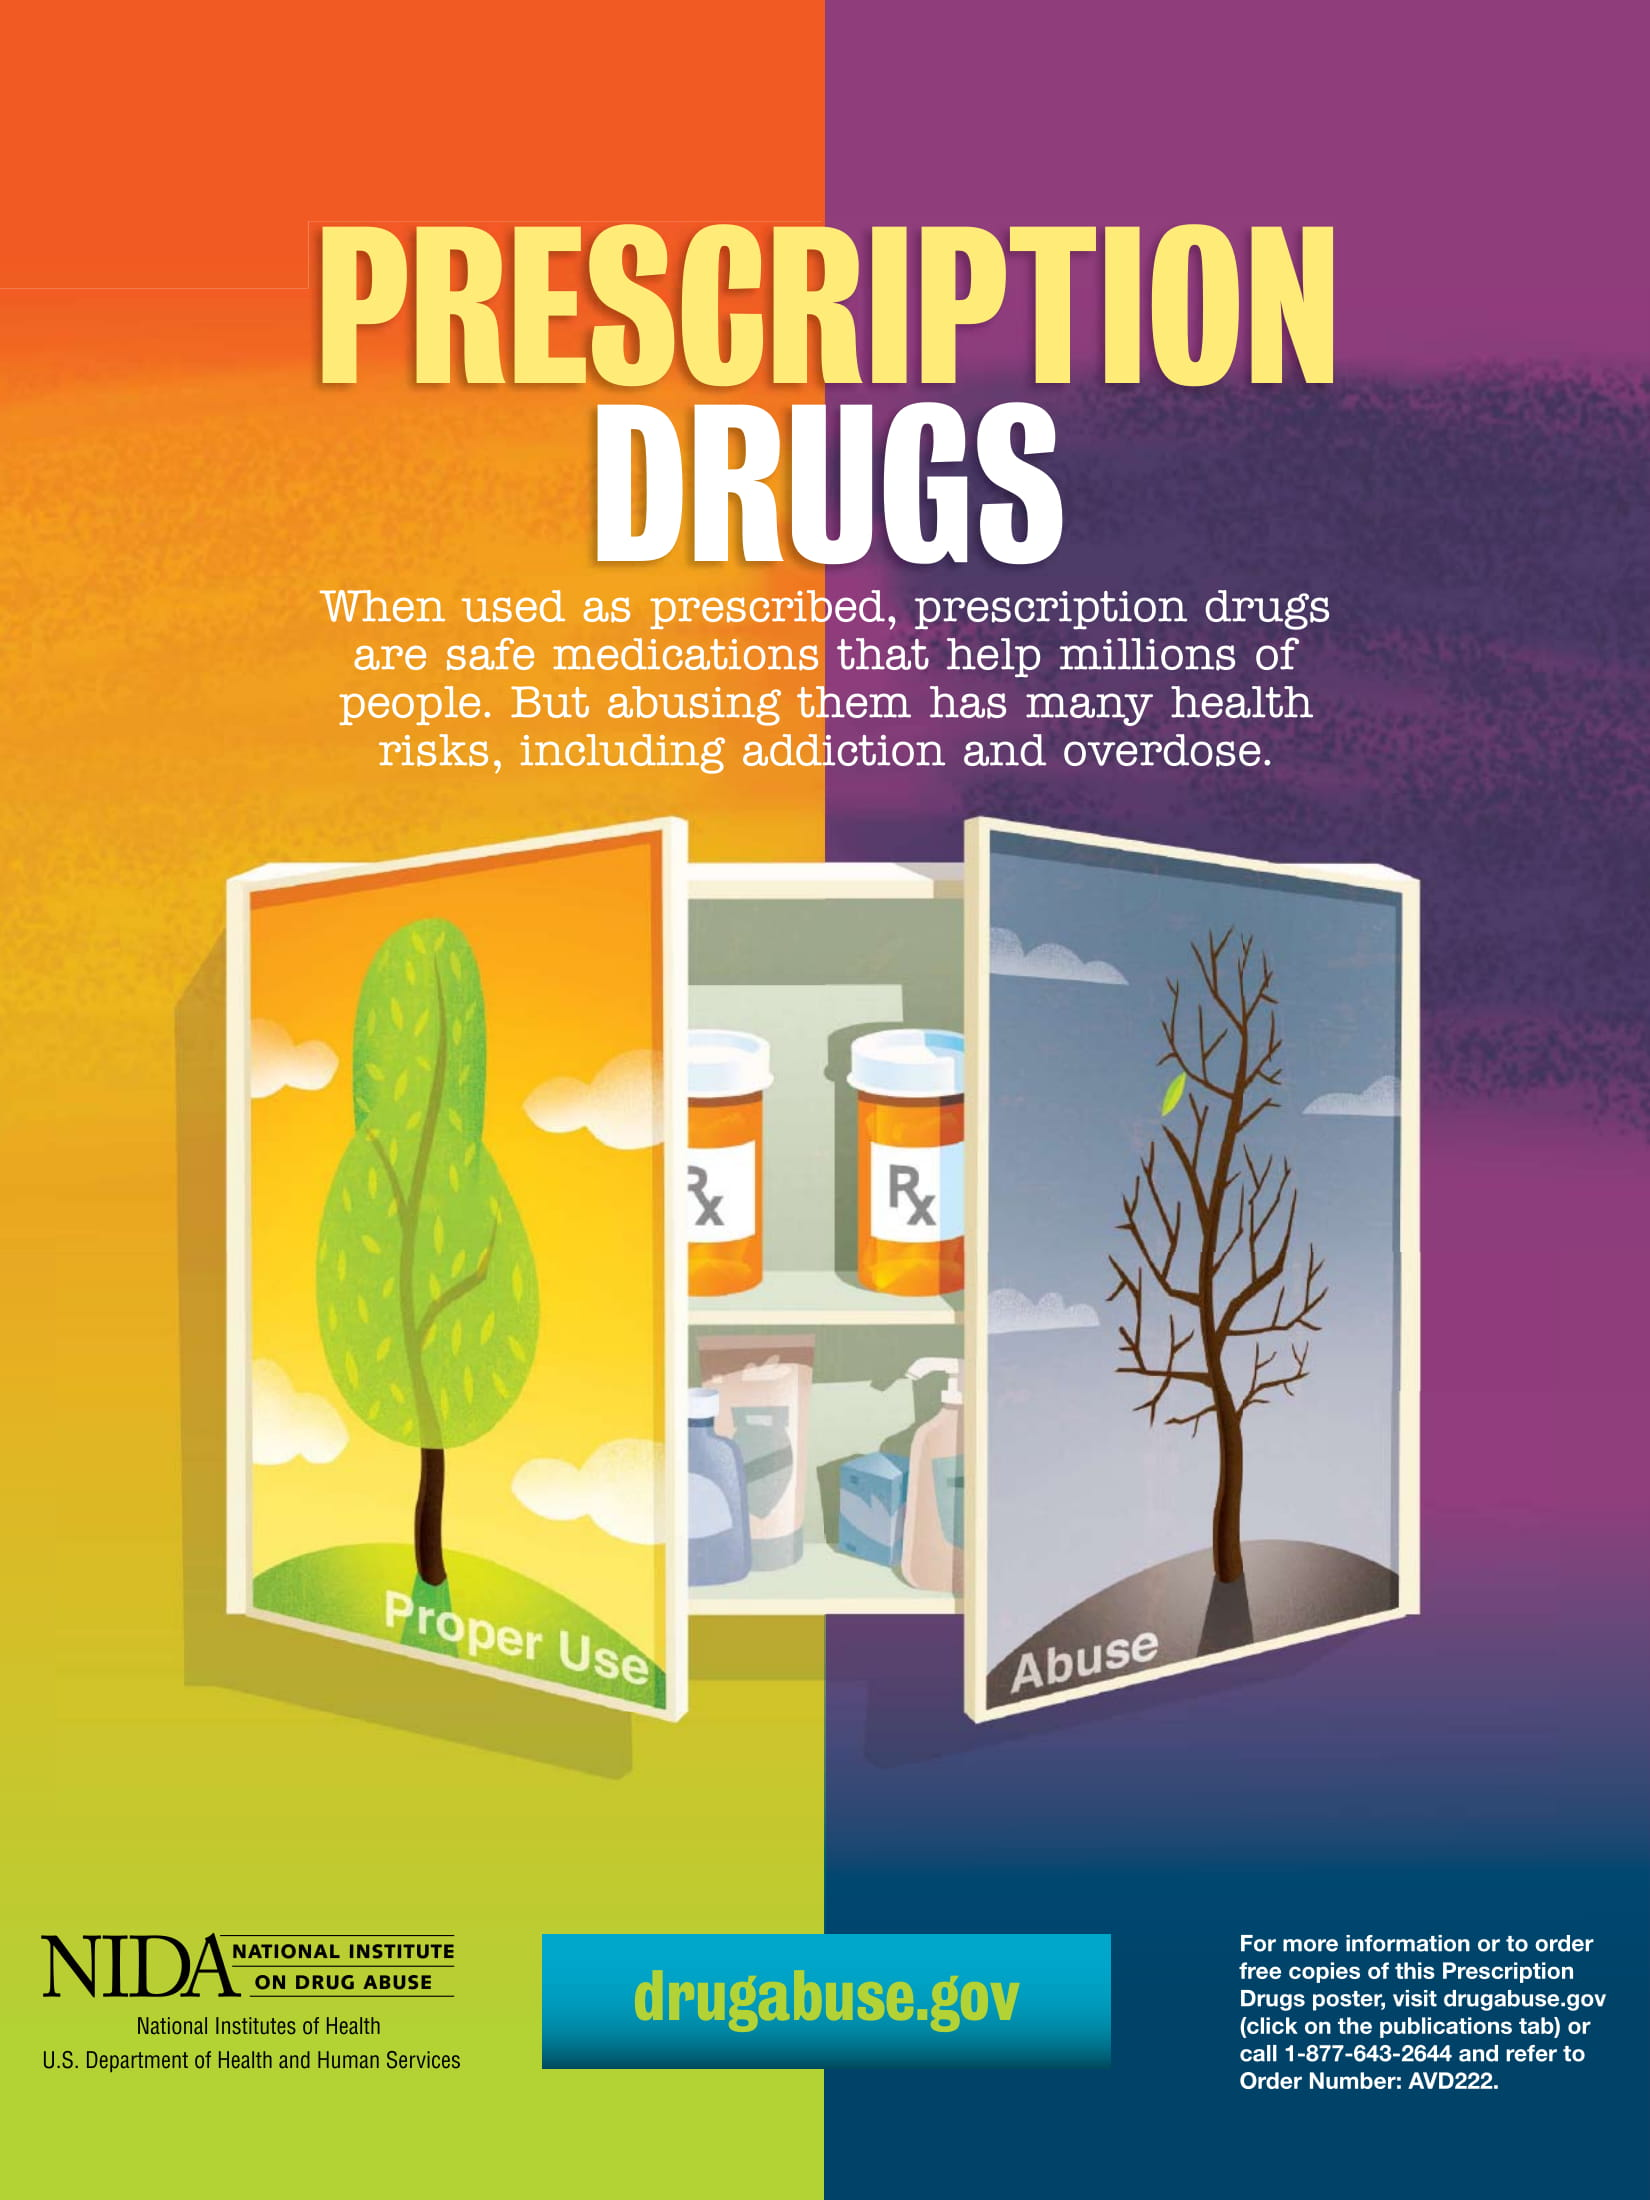 PrescriptionDrugs_poster-1